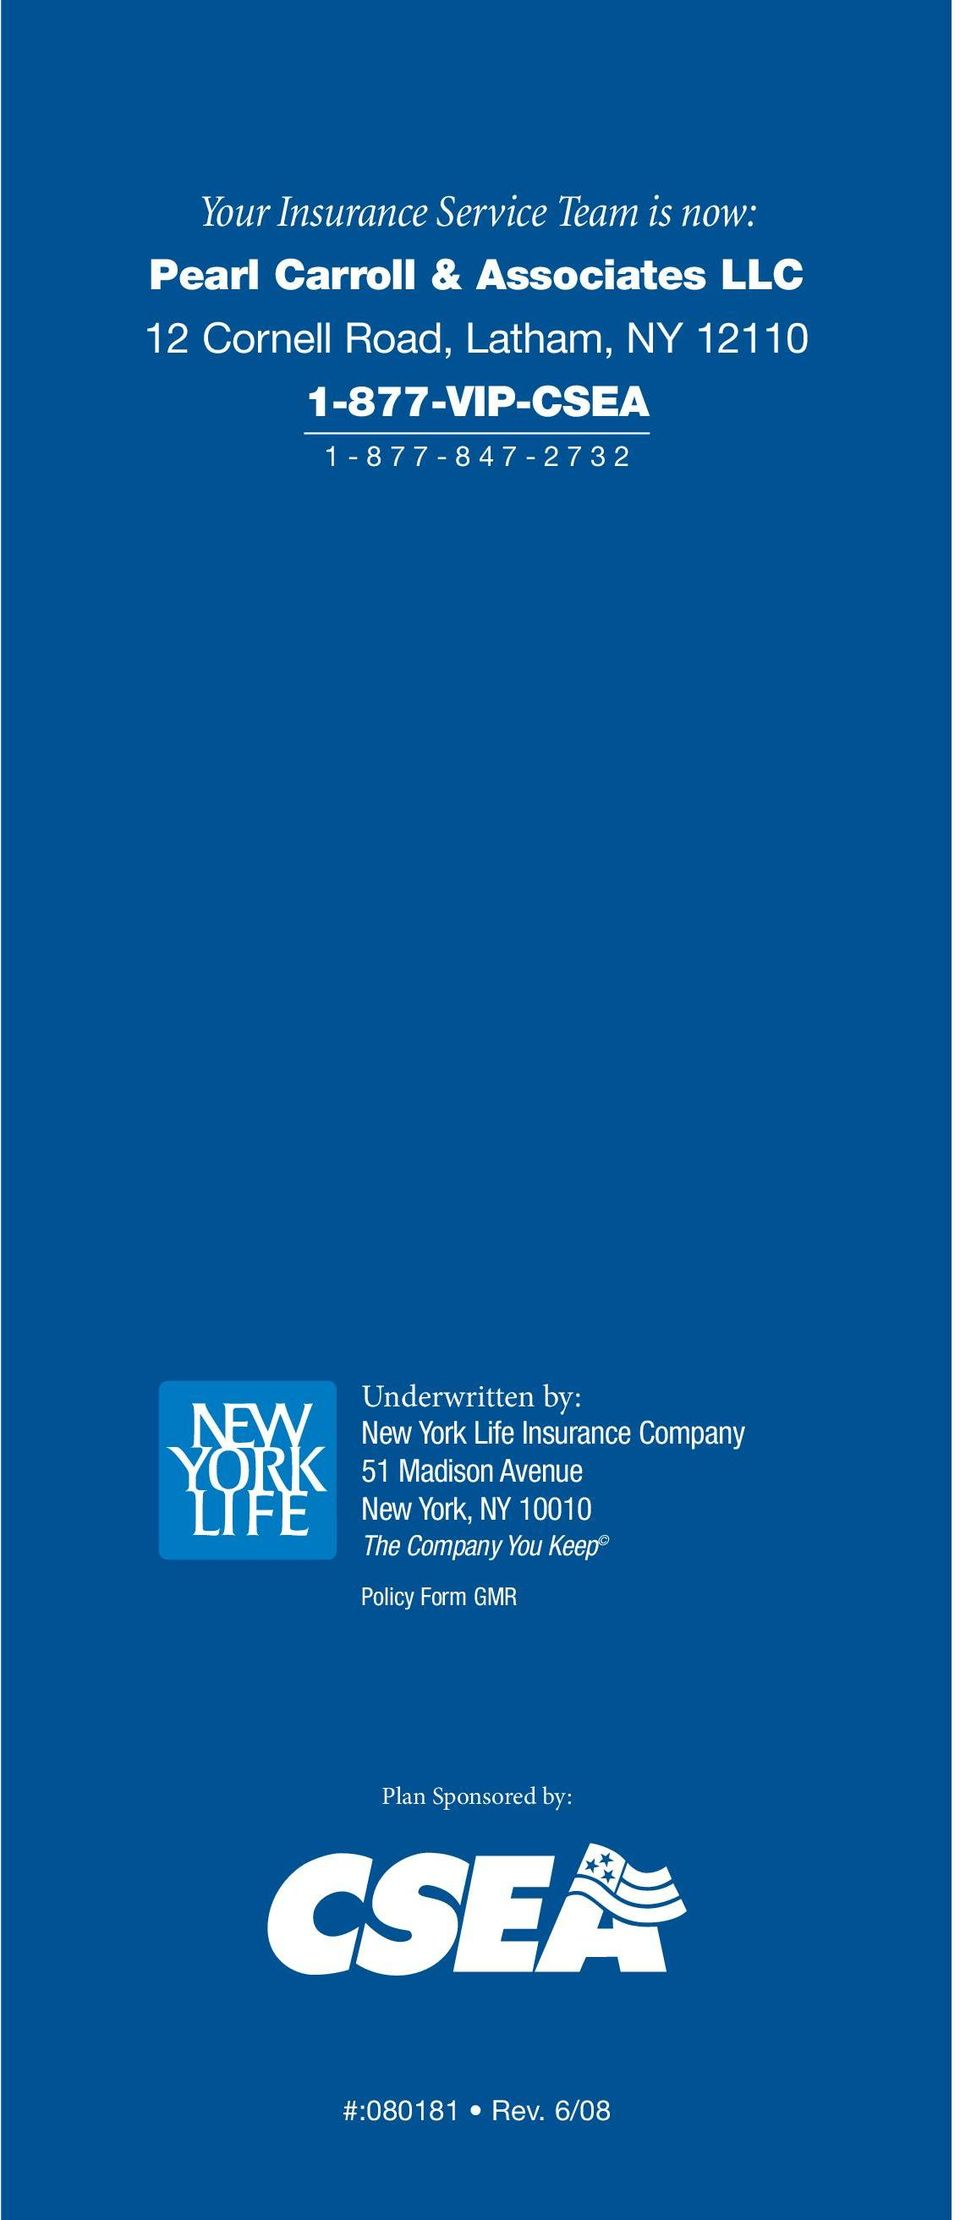 Underwritten by: New York Life Insurance Company 51 Madison Avenue New